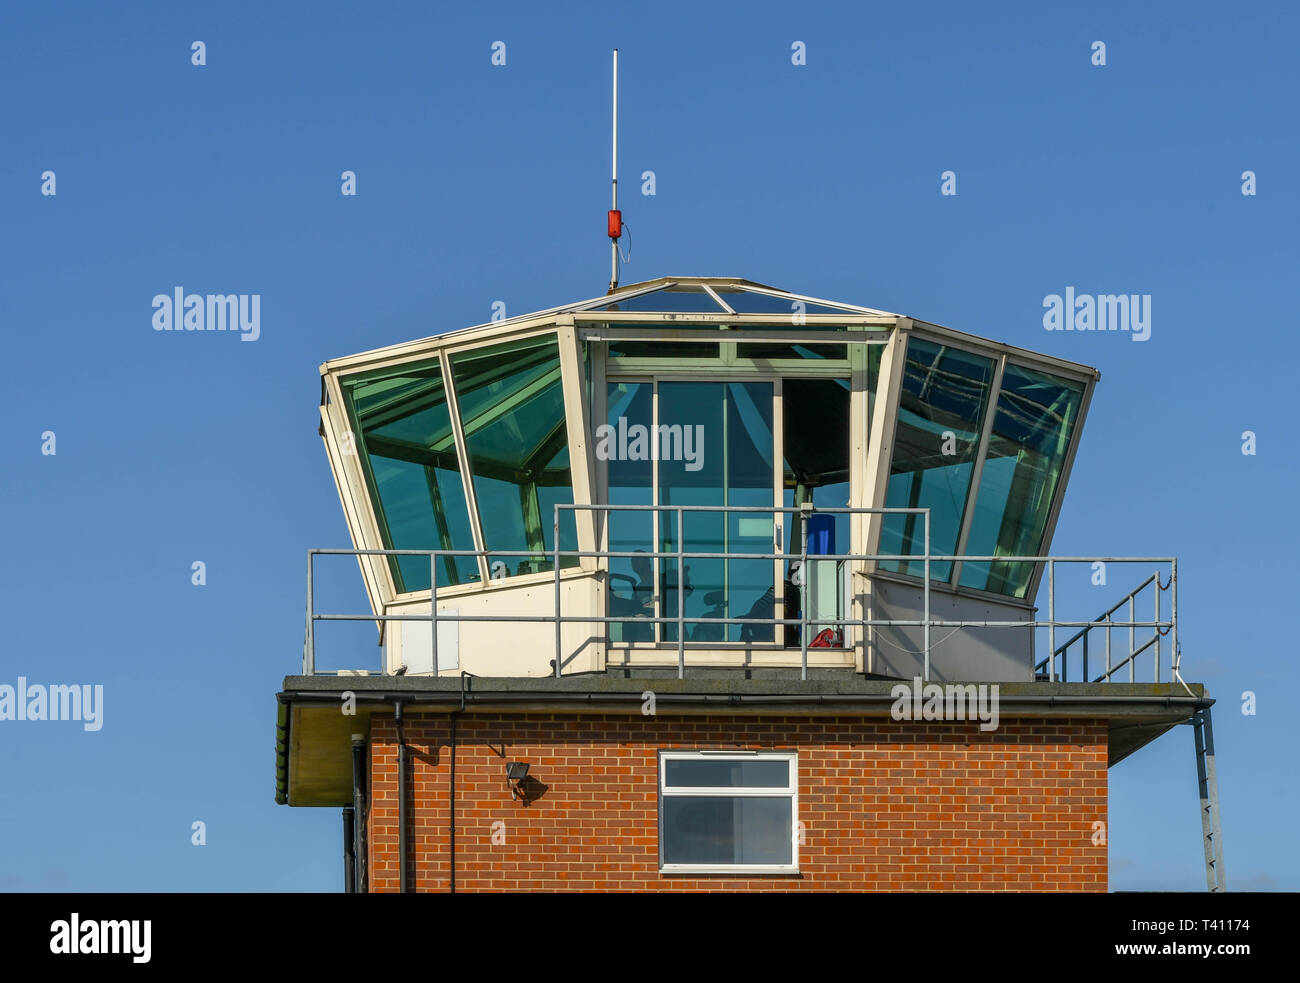 HIGH WYCOMBE, ENGLAND - MARCH 2019: Control tower at Wycombe Air Park. - Stock Image